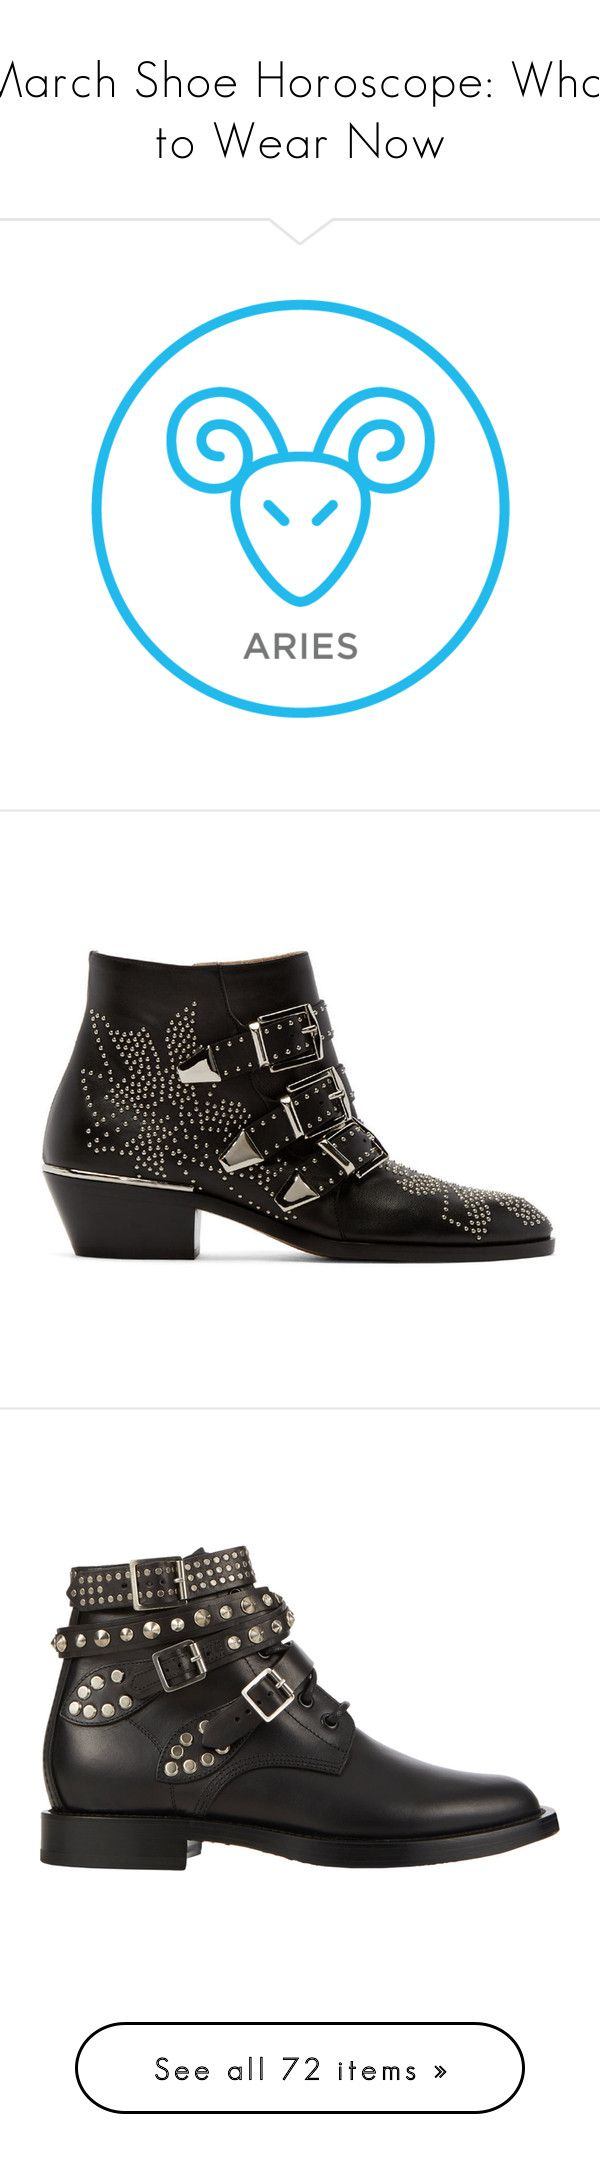 """""""March Shoe Horoscope: What to Wear Now"""" by polyvore-editorial ❤ liked on Polyvore featuring shoes, Horoscope, boots, ankle booties, ankle high boots, zipper booties, studded boots, almond toe boots, black and silver boots and botas"""